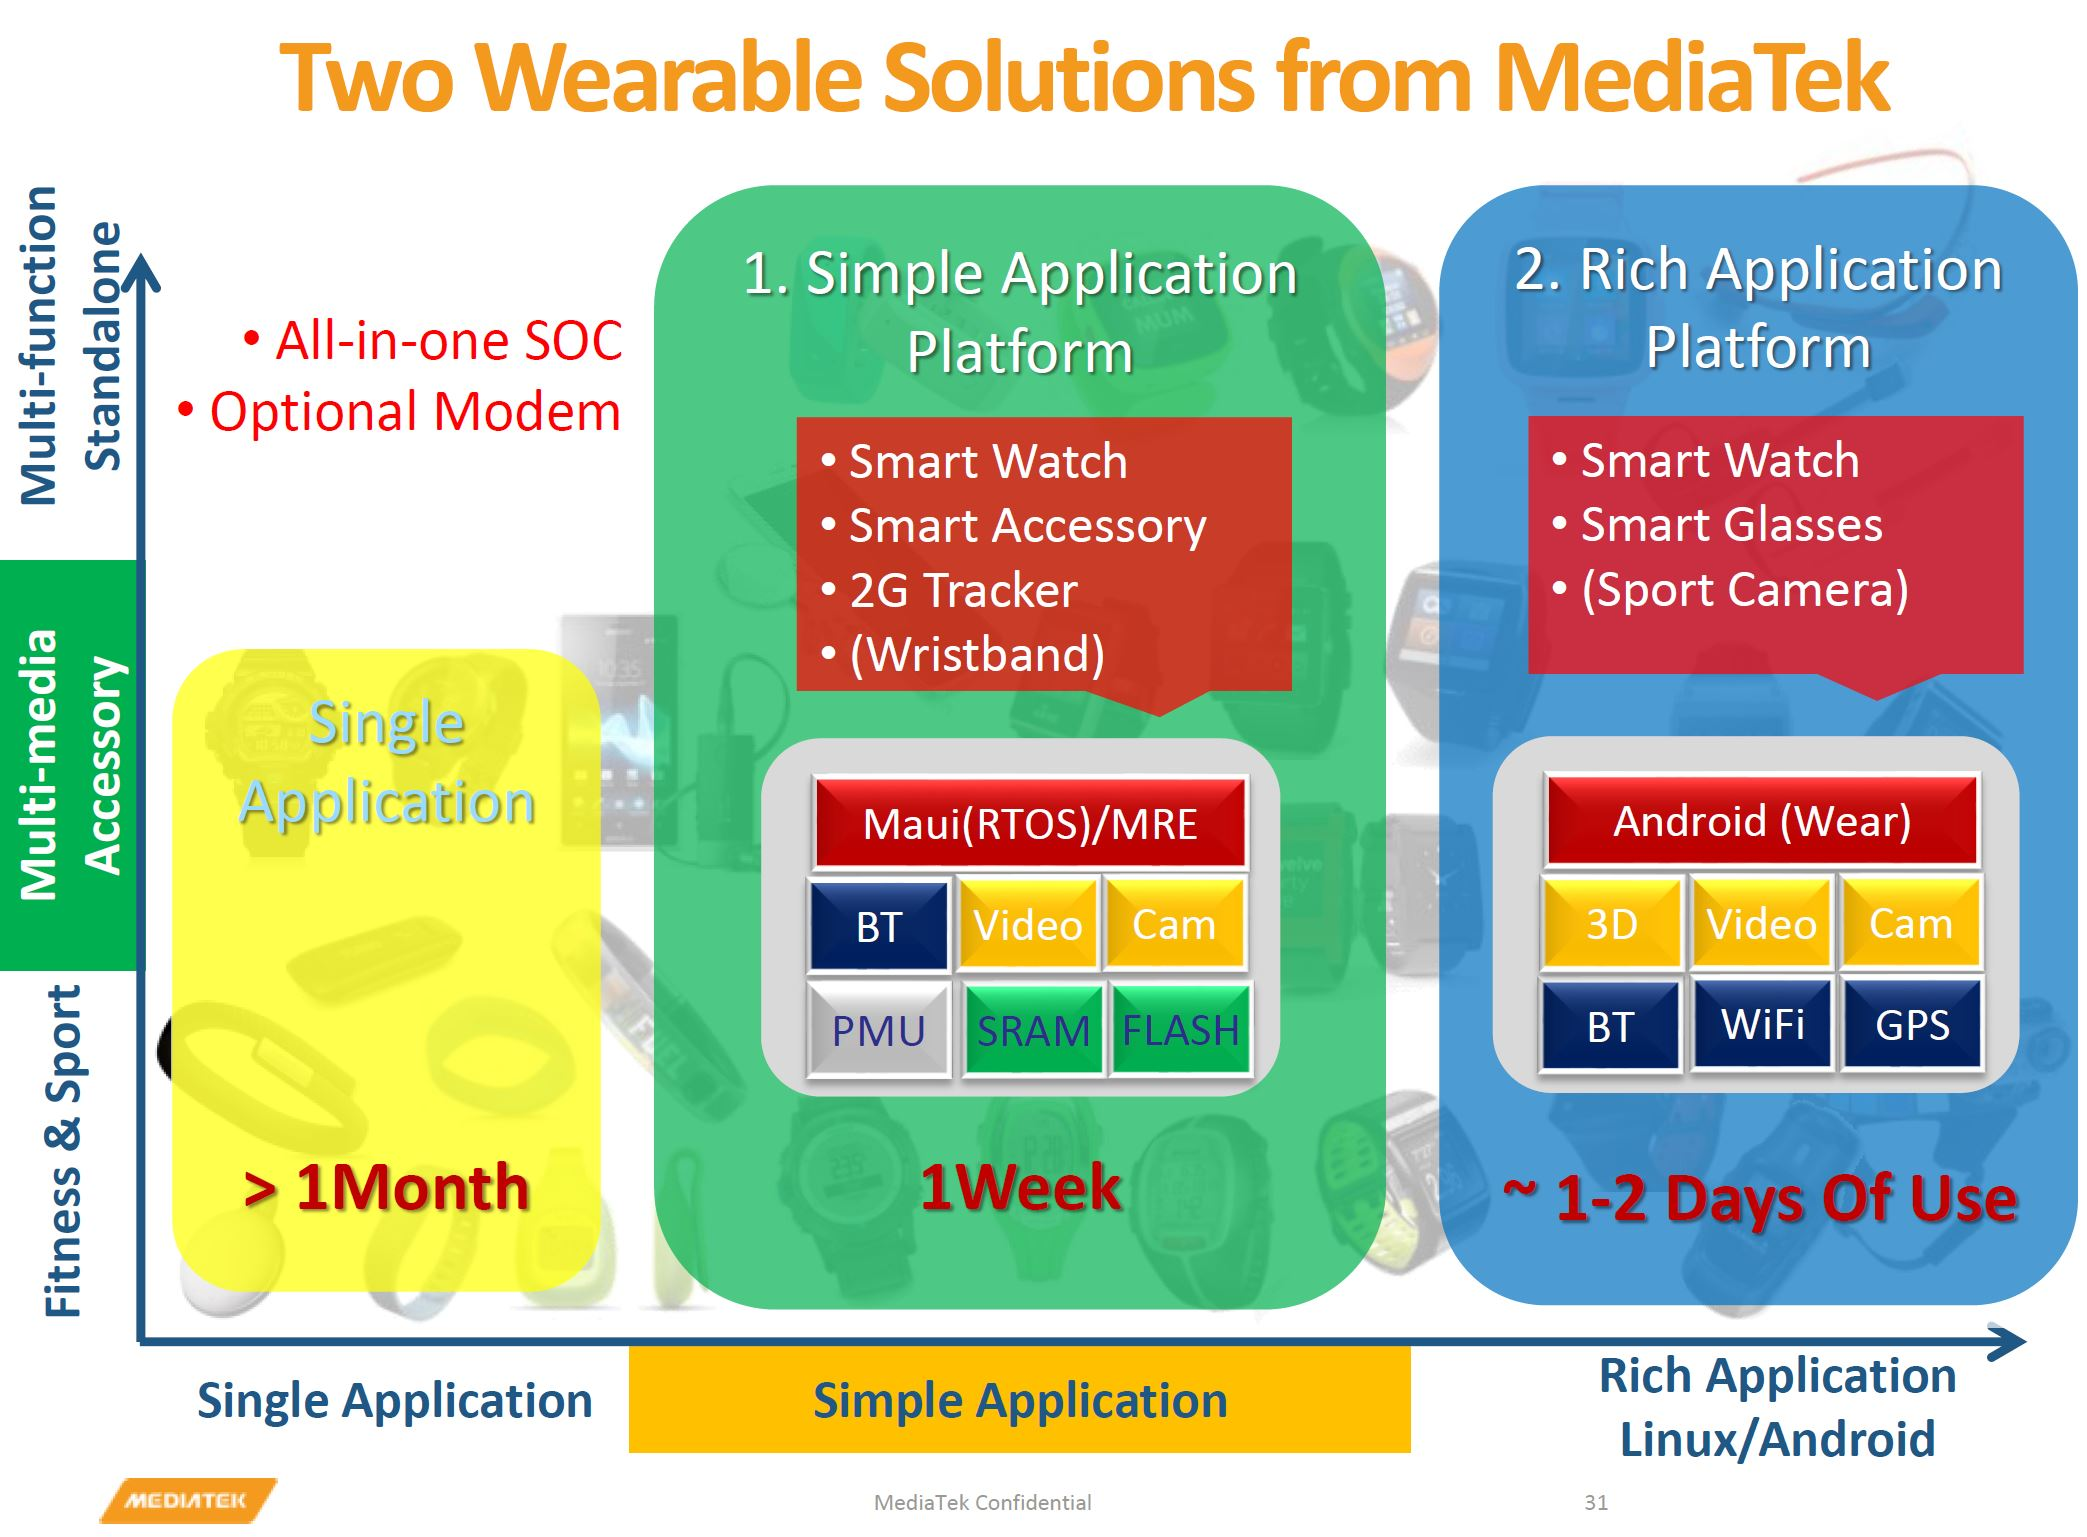 mediatek labs and linkit platform launch targeting iot and